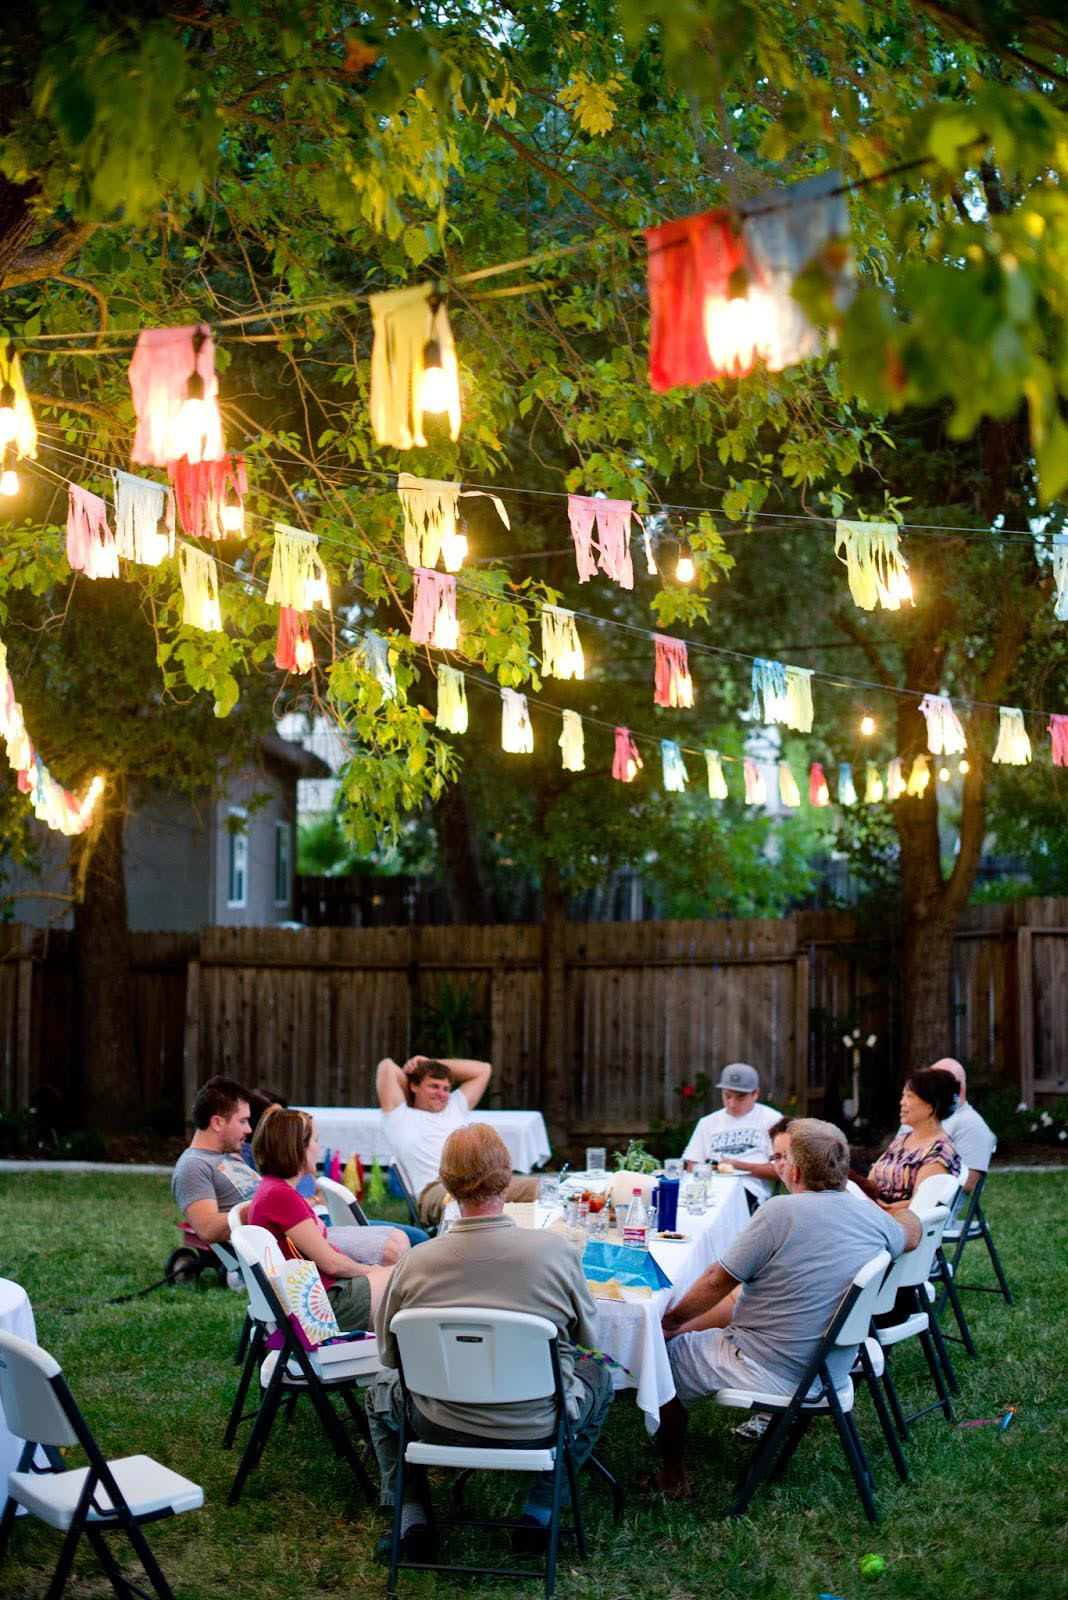 Some creative outdoor party games home party ideas for Backyard ideas for adults